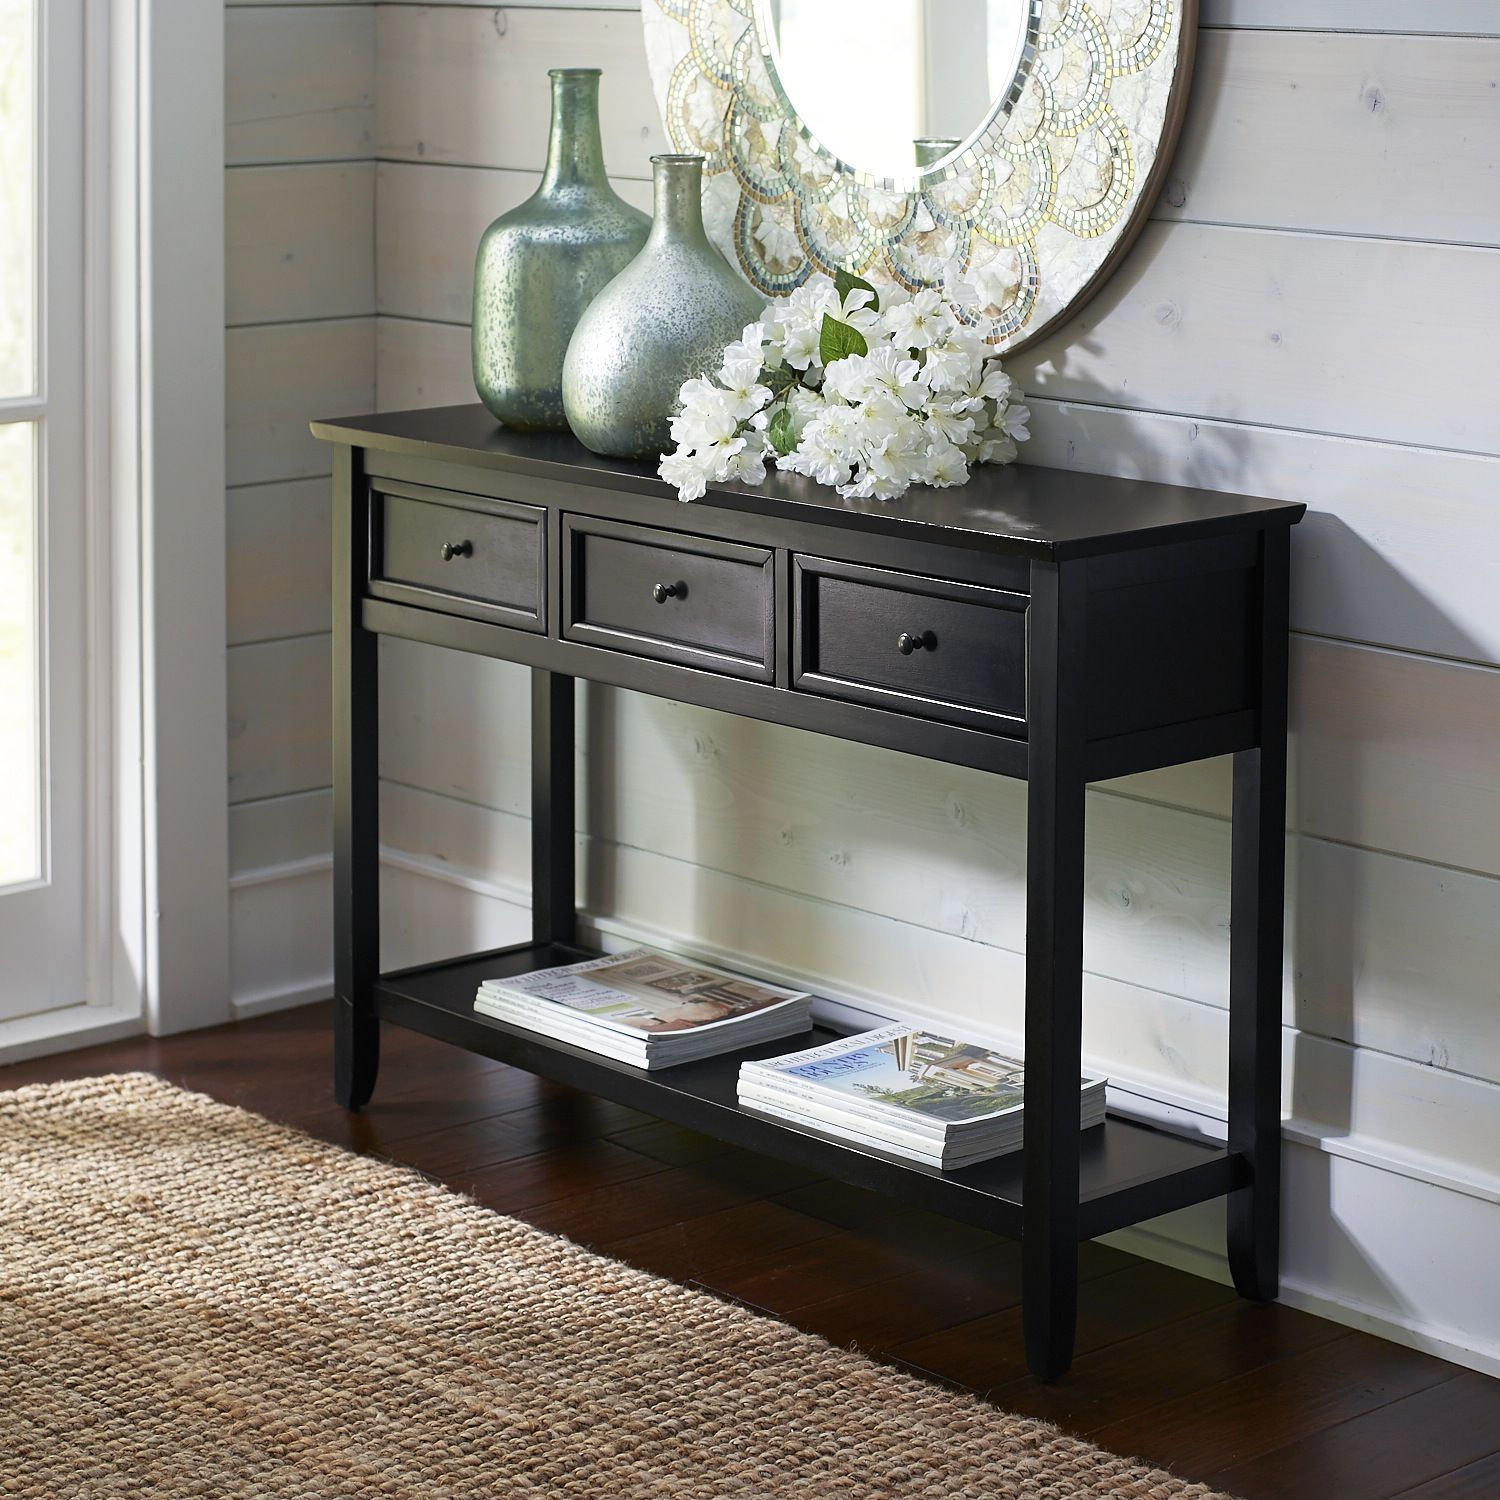 Ashington Console Table - Rubbed Black